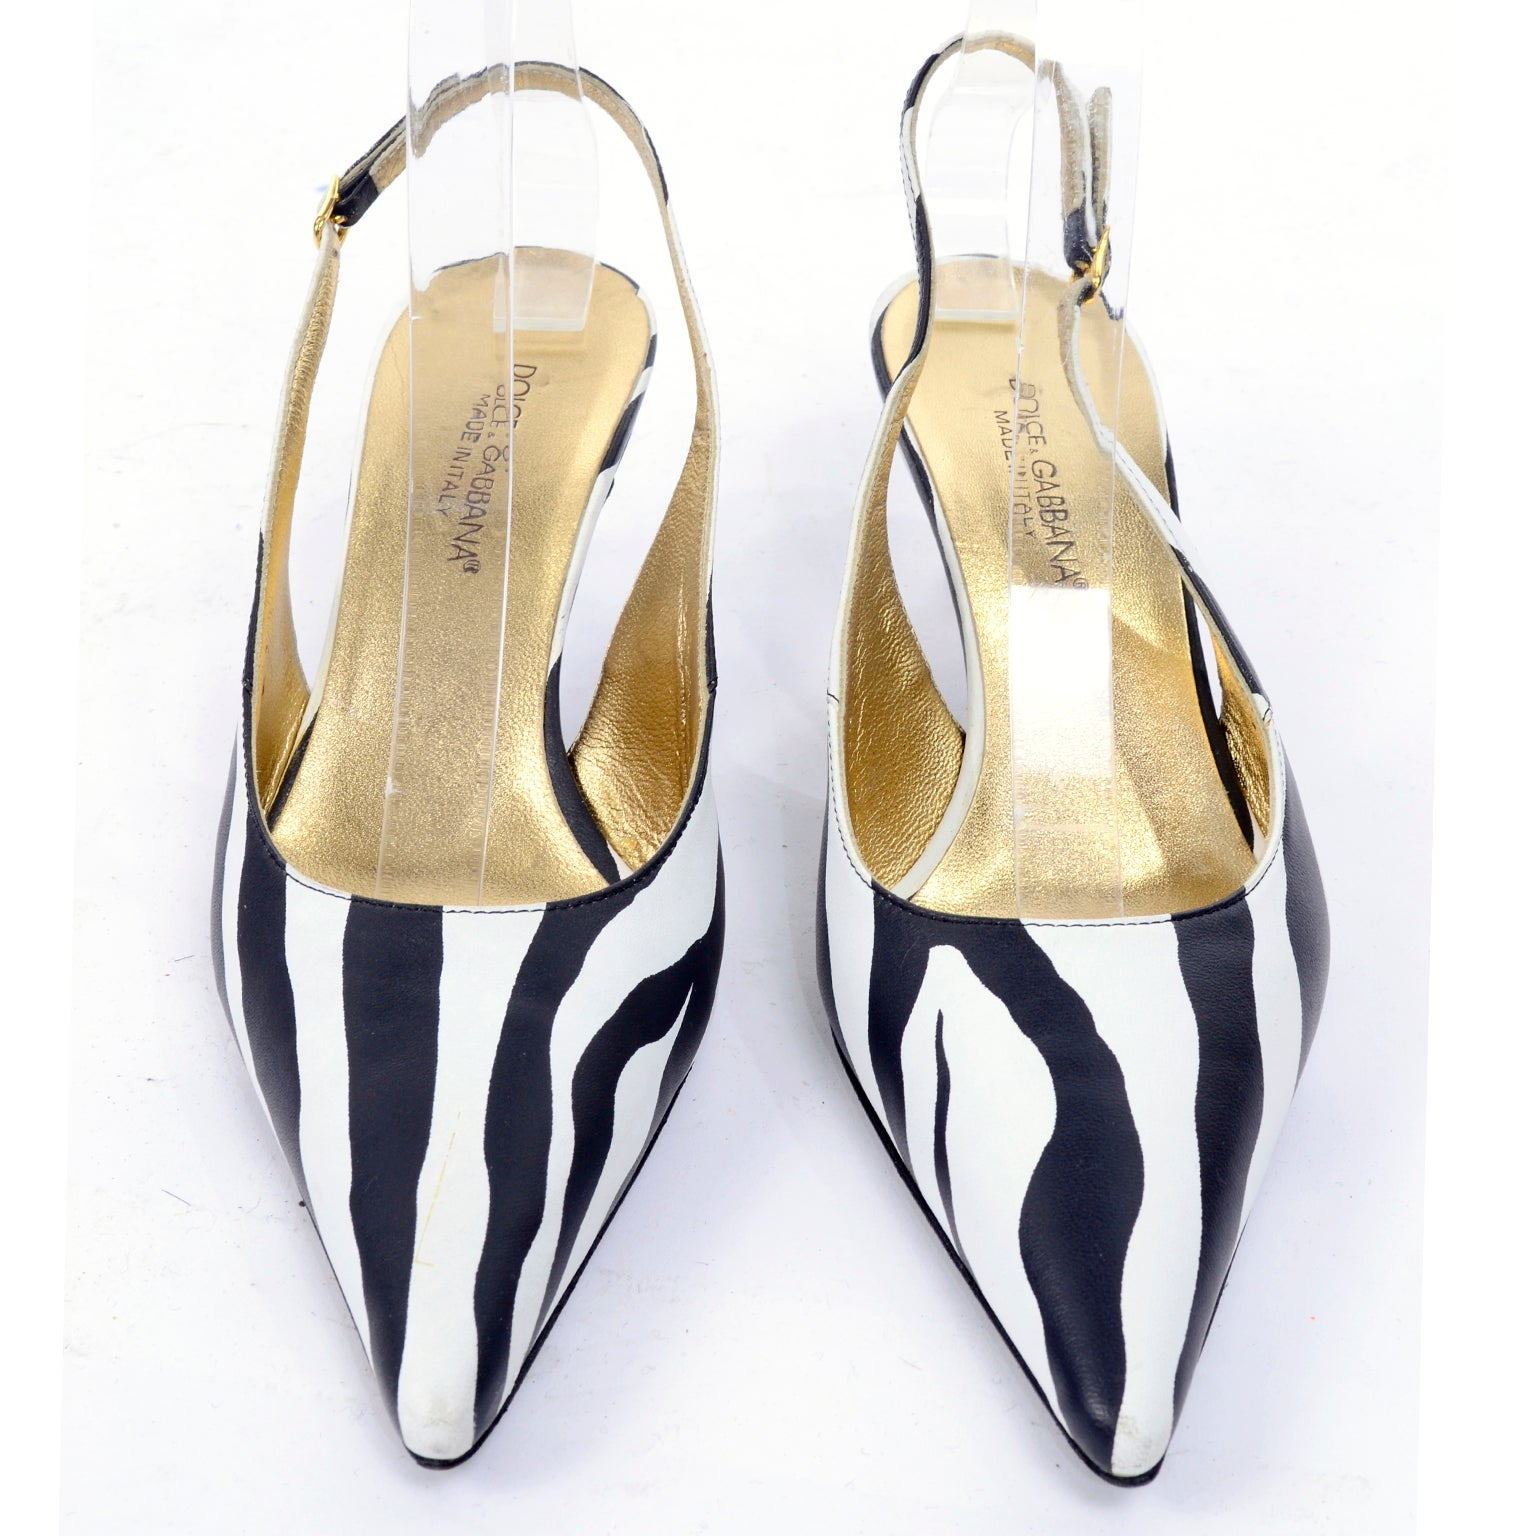 aaedea669 Dolce and Gabbana Zebra Stripe Shoes Vintage Sling Back Kitten Heels in  Size 38 For Sale at 1stdibs